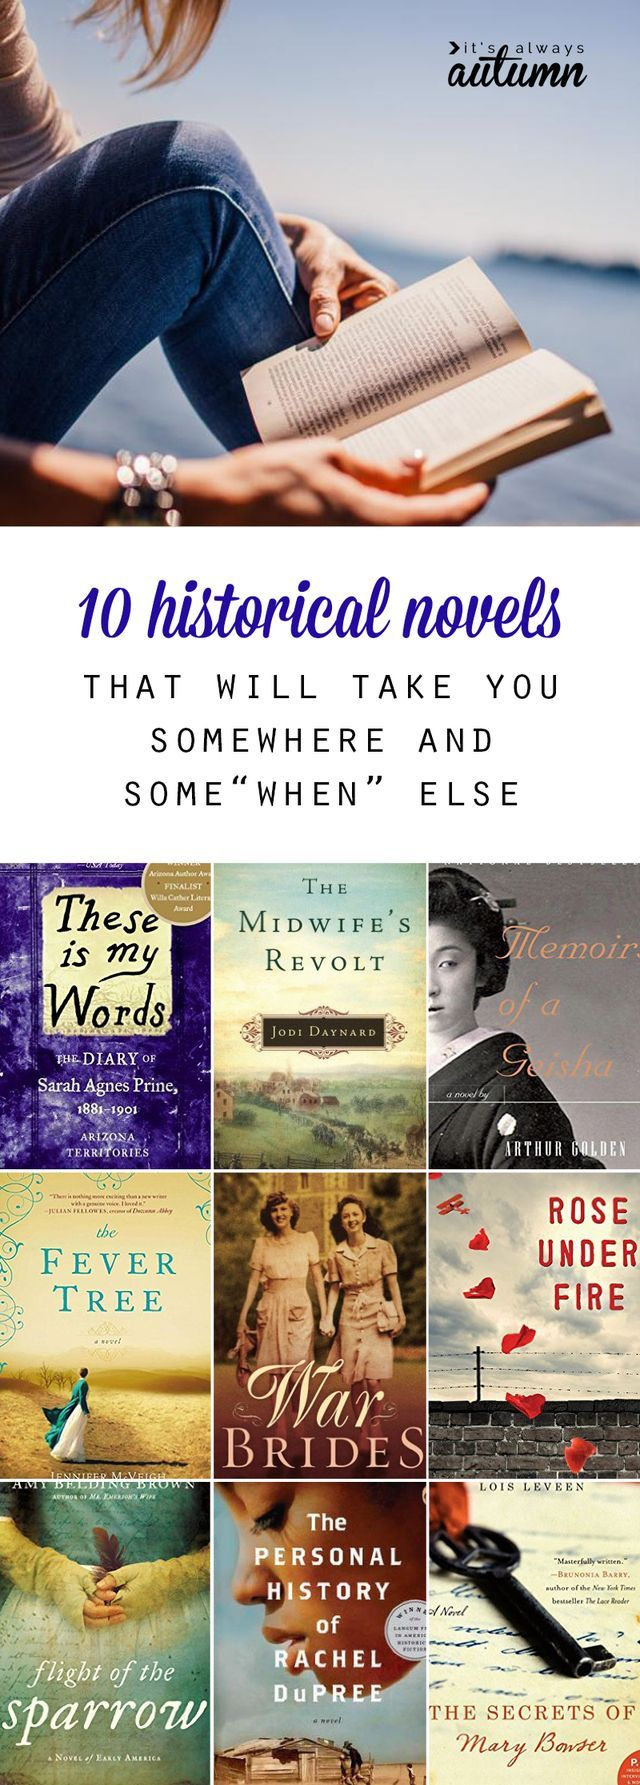 10 amazing novels that will take you to a different time - 10 amazing historical novels that will take you to another place and time. I love finding new ideas for what books to read next! Great historical fiction.